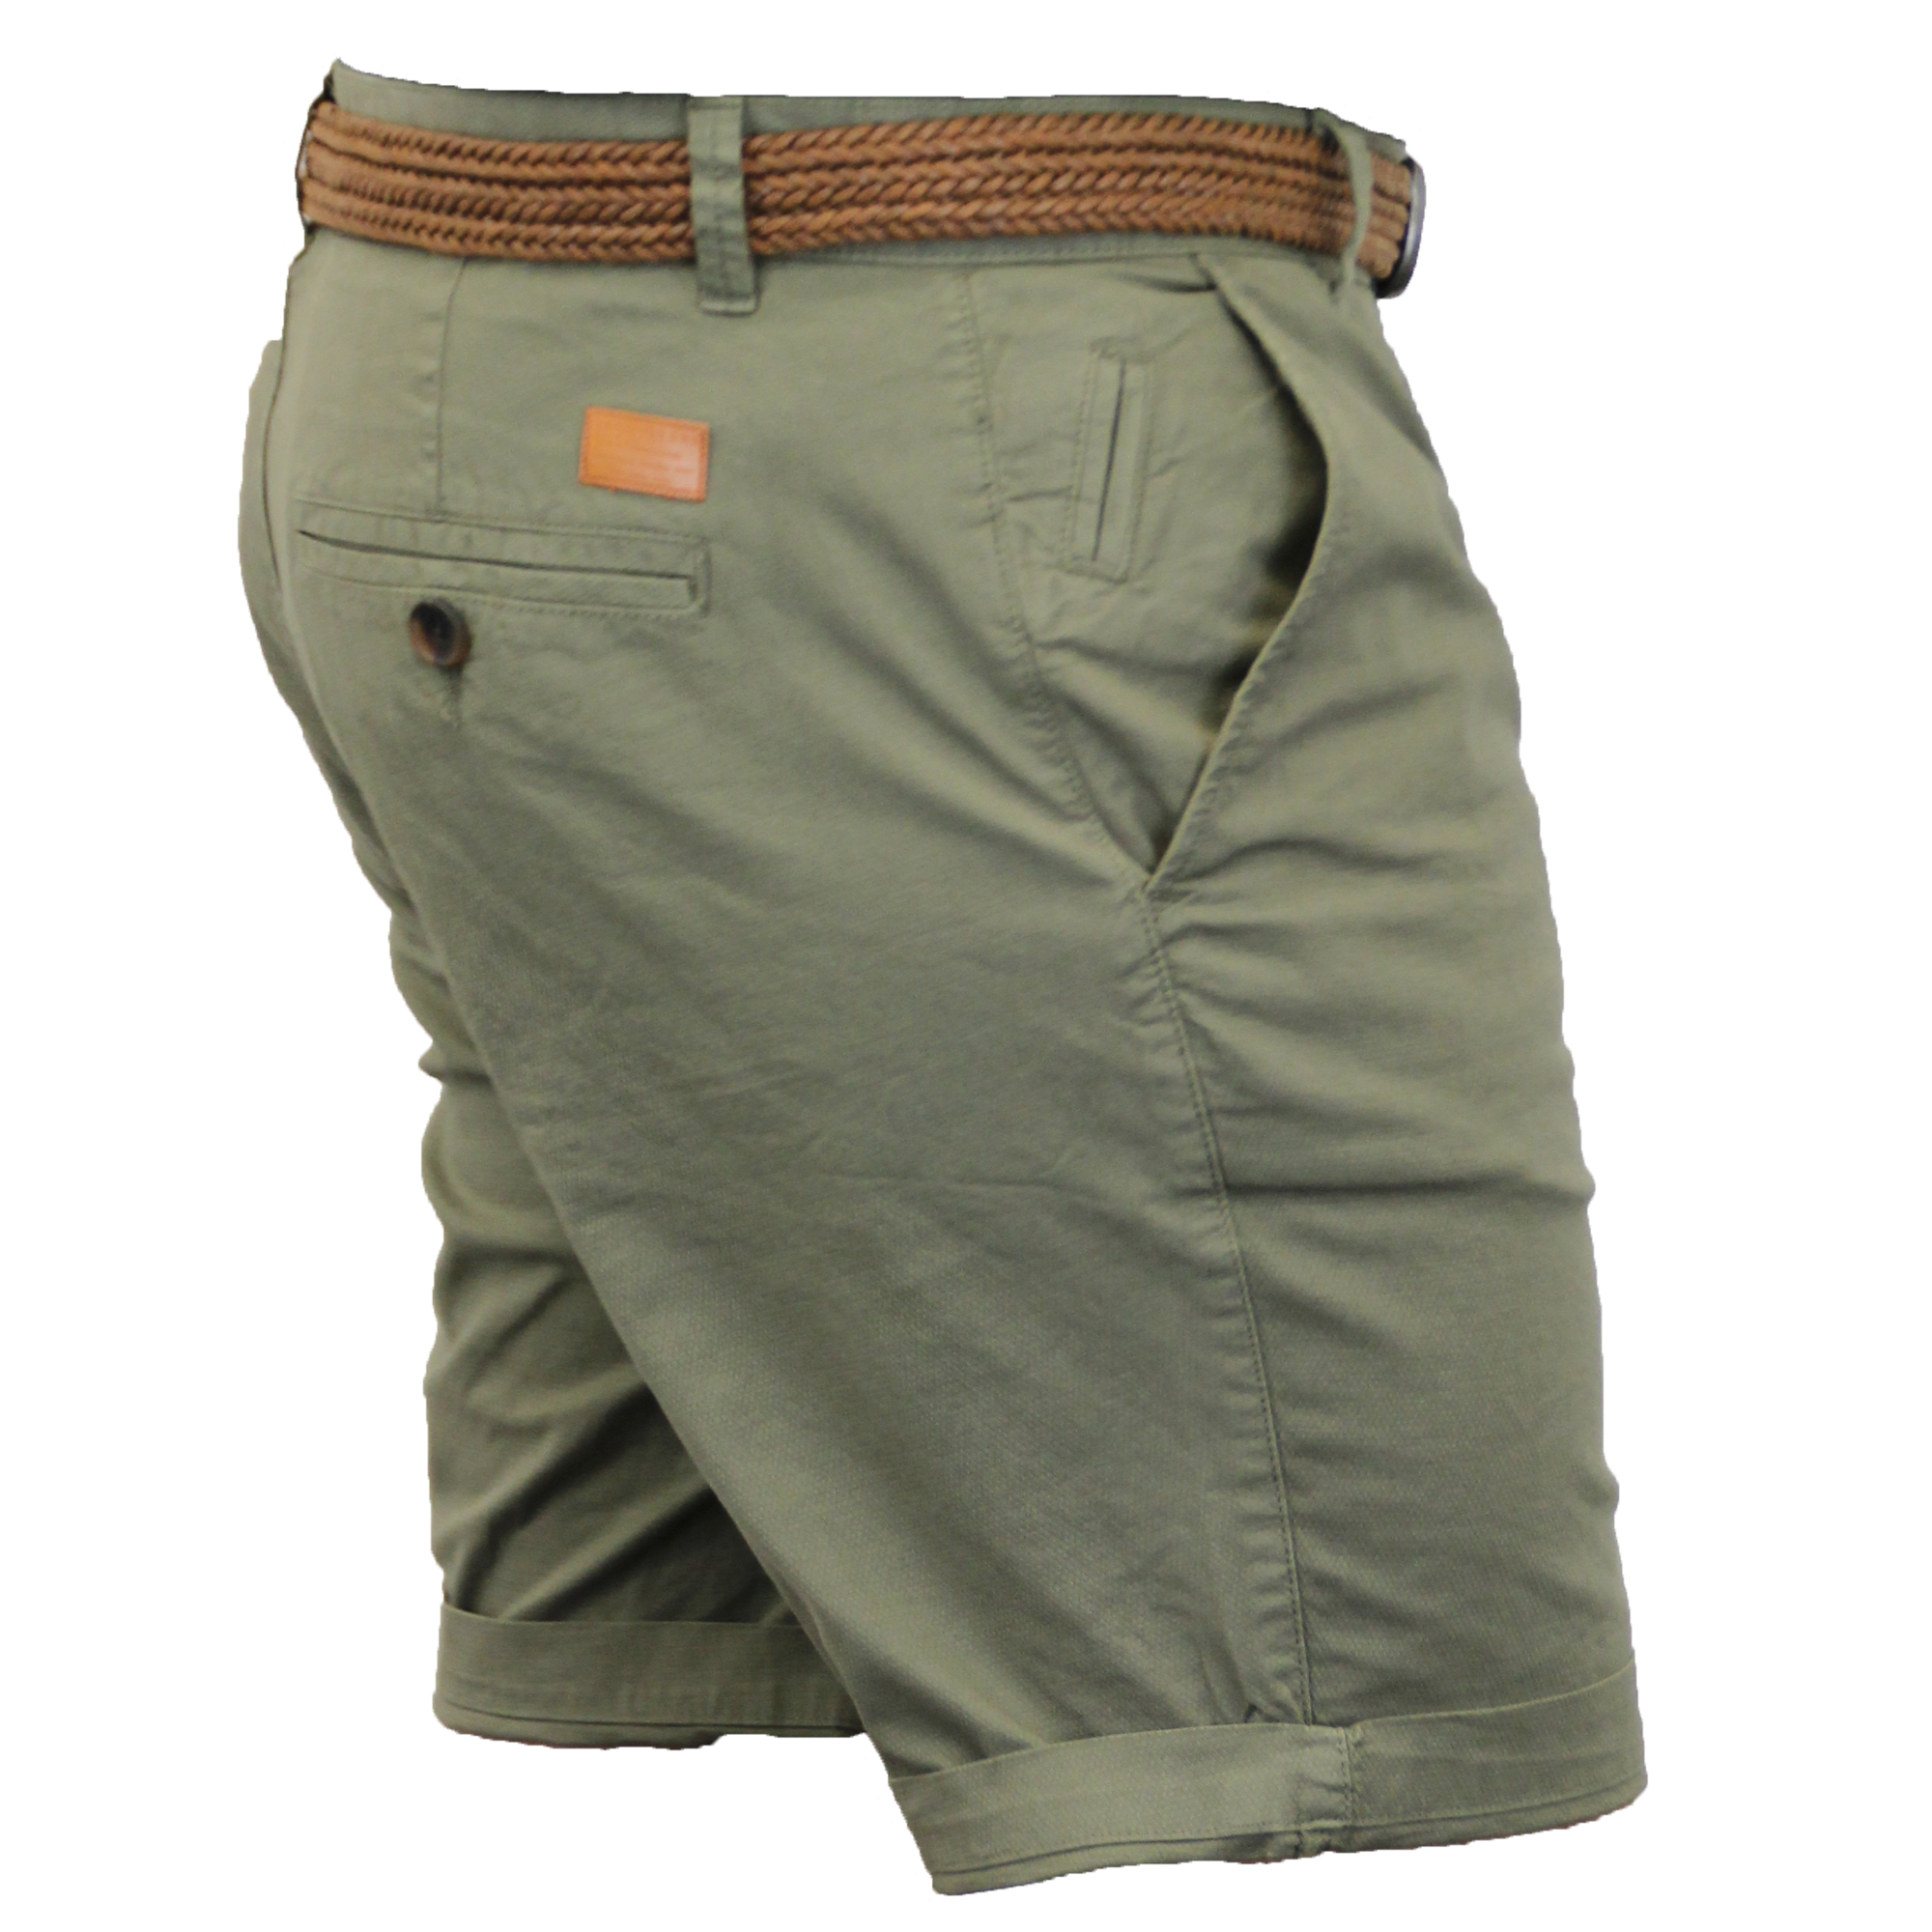 Mens-Chino-Shorts-Threadbare-Belted-Westace-Pants-Knee-Length-Roll-Up-Summer-New thumbnail 6